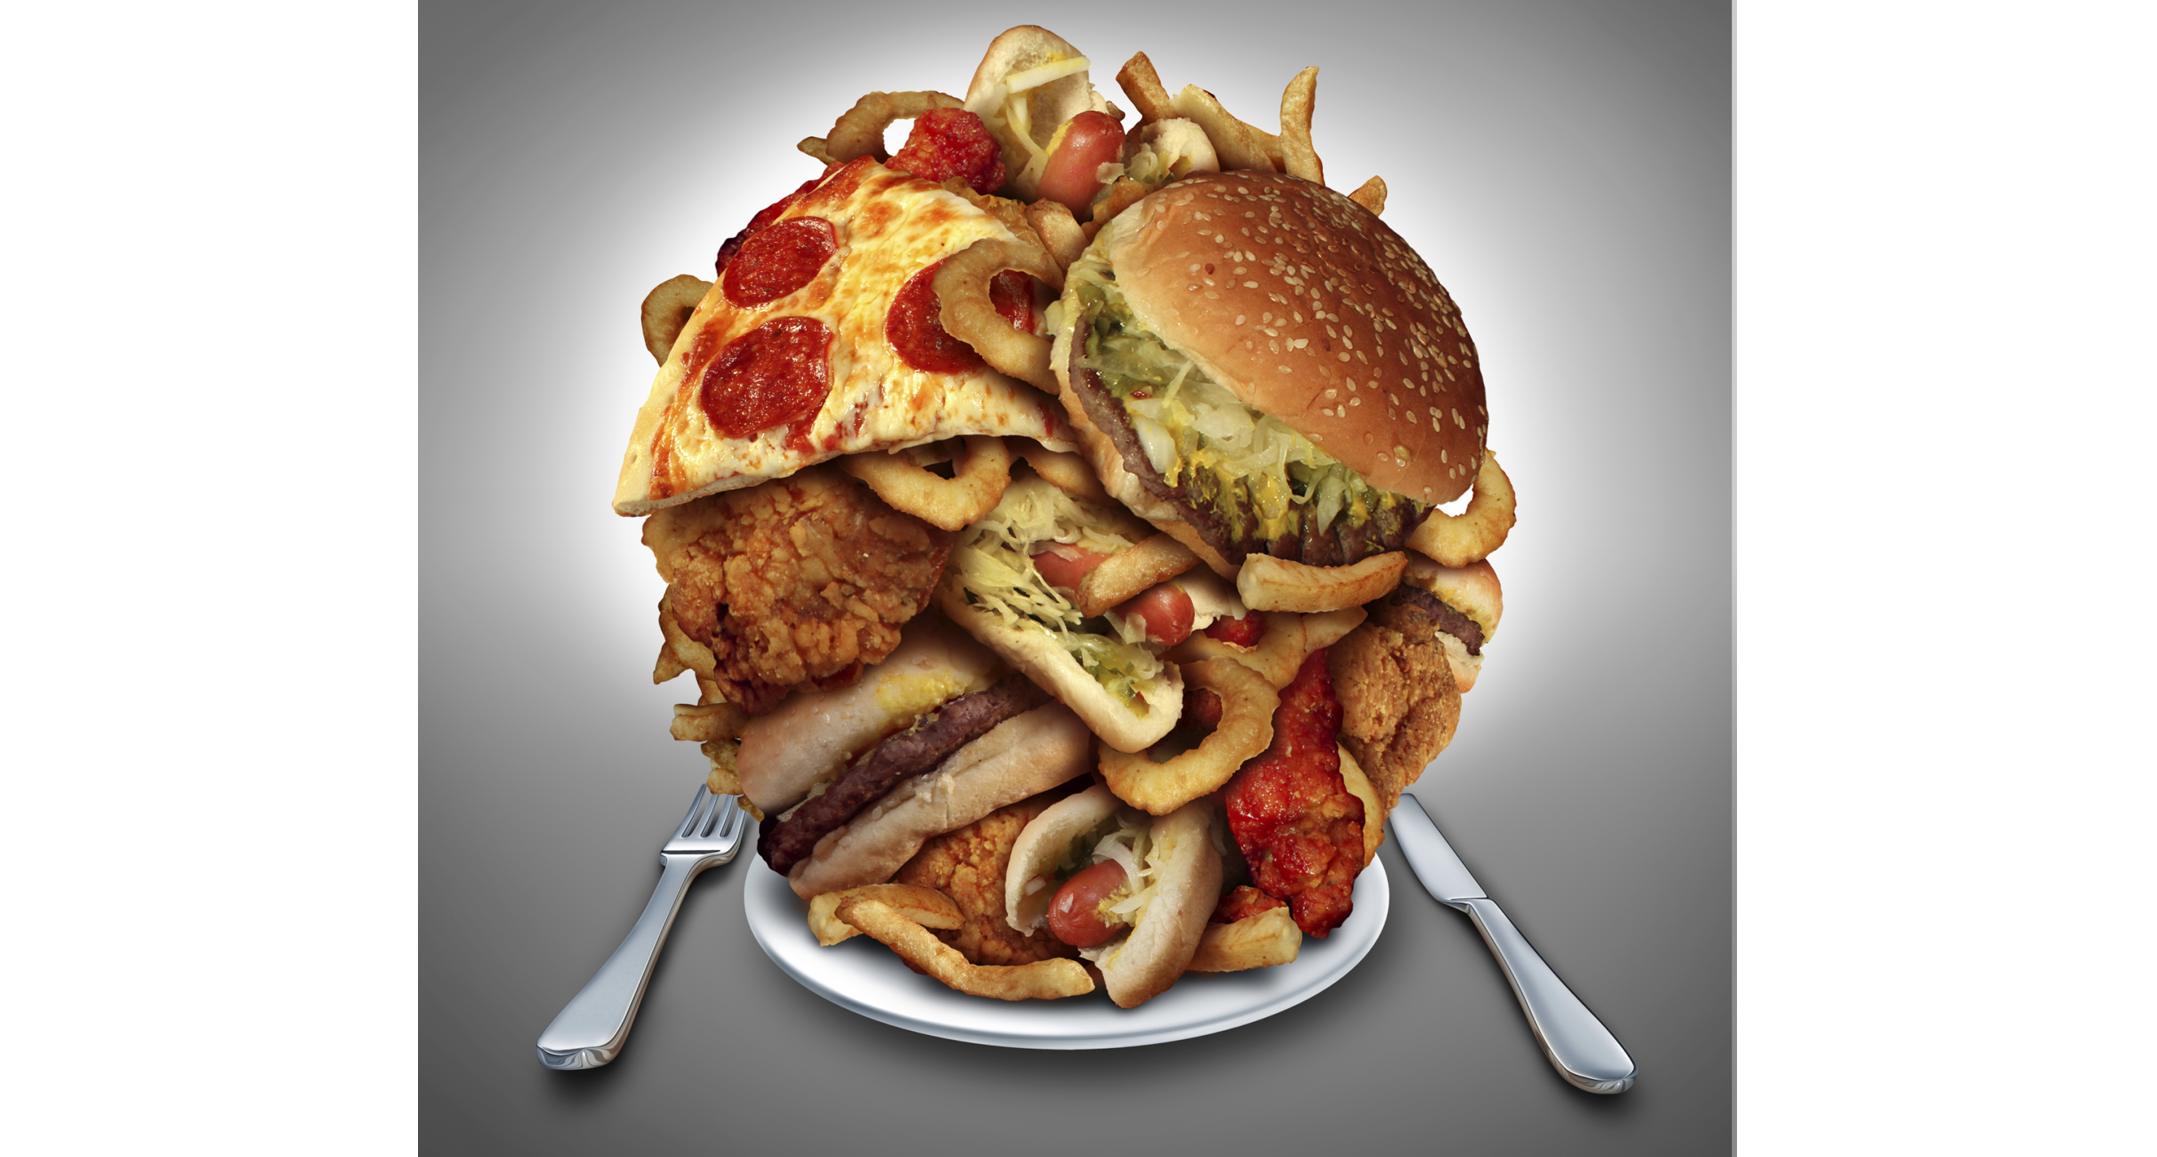 effects of eating habits on lifespan The long-term effects of unhealthy eating include increased risk of osteoporosis, cardiovascular problems, obesity, type 2 diabetes and breathing problems, according to webmd other effects include more risks of gallstones, high blood pressure, sleep apnea and stroke.